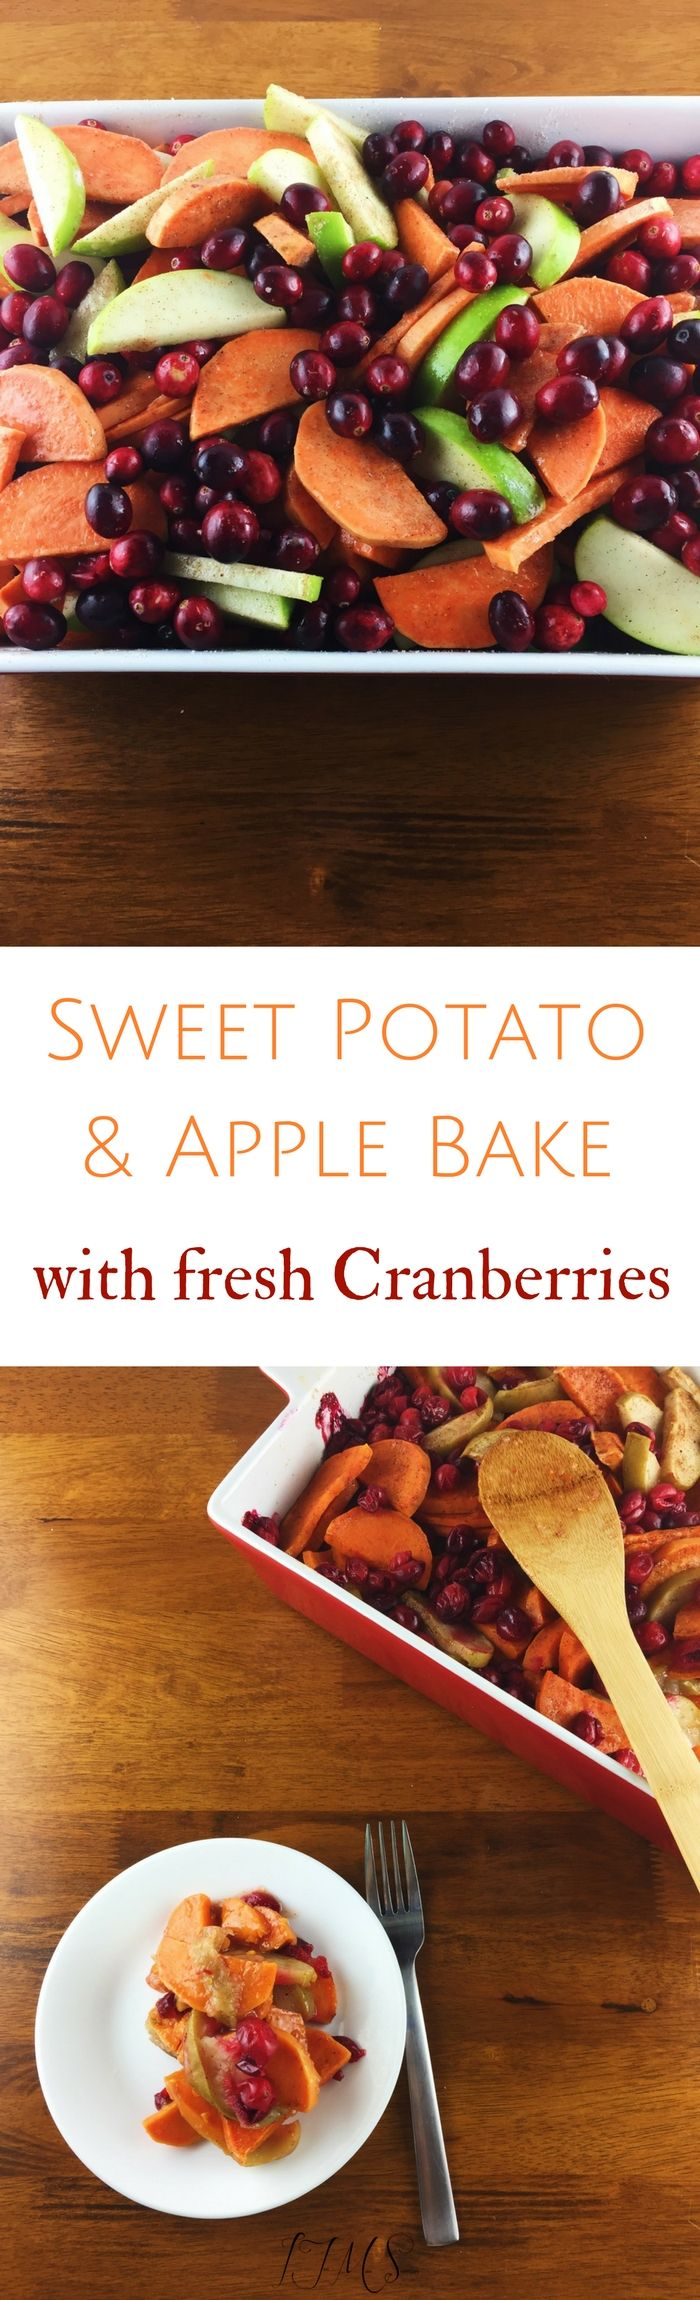 This Sweet Potato and Apple Bake with fresh cranberries is a thing of beauty. I think it screams everything fall and is a beautiful dish to present